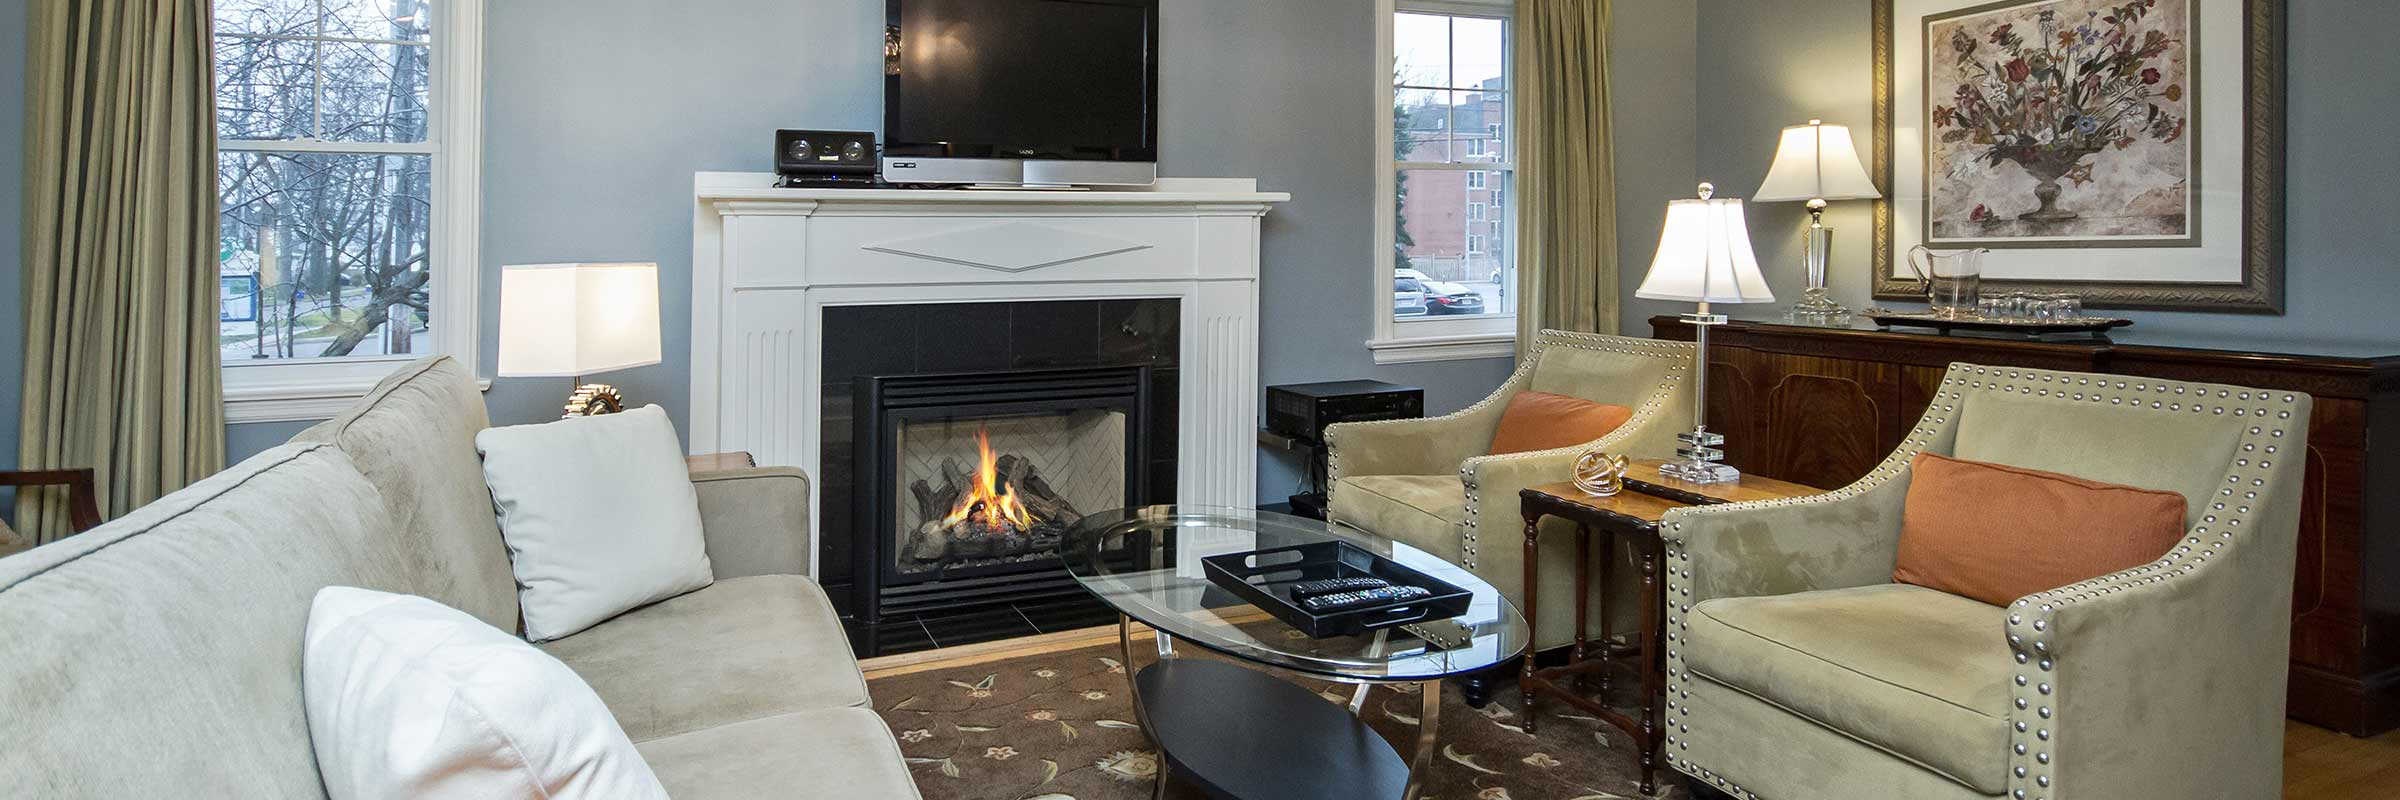 Booking this 2 bedroom apartment in downtown Burlington with fireplace glowing and lush comfortable easy chairs